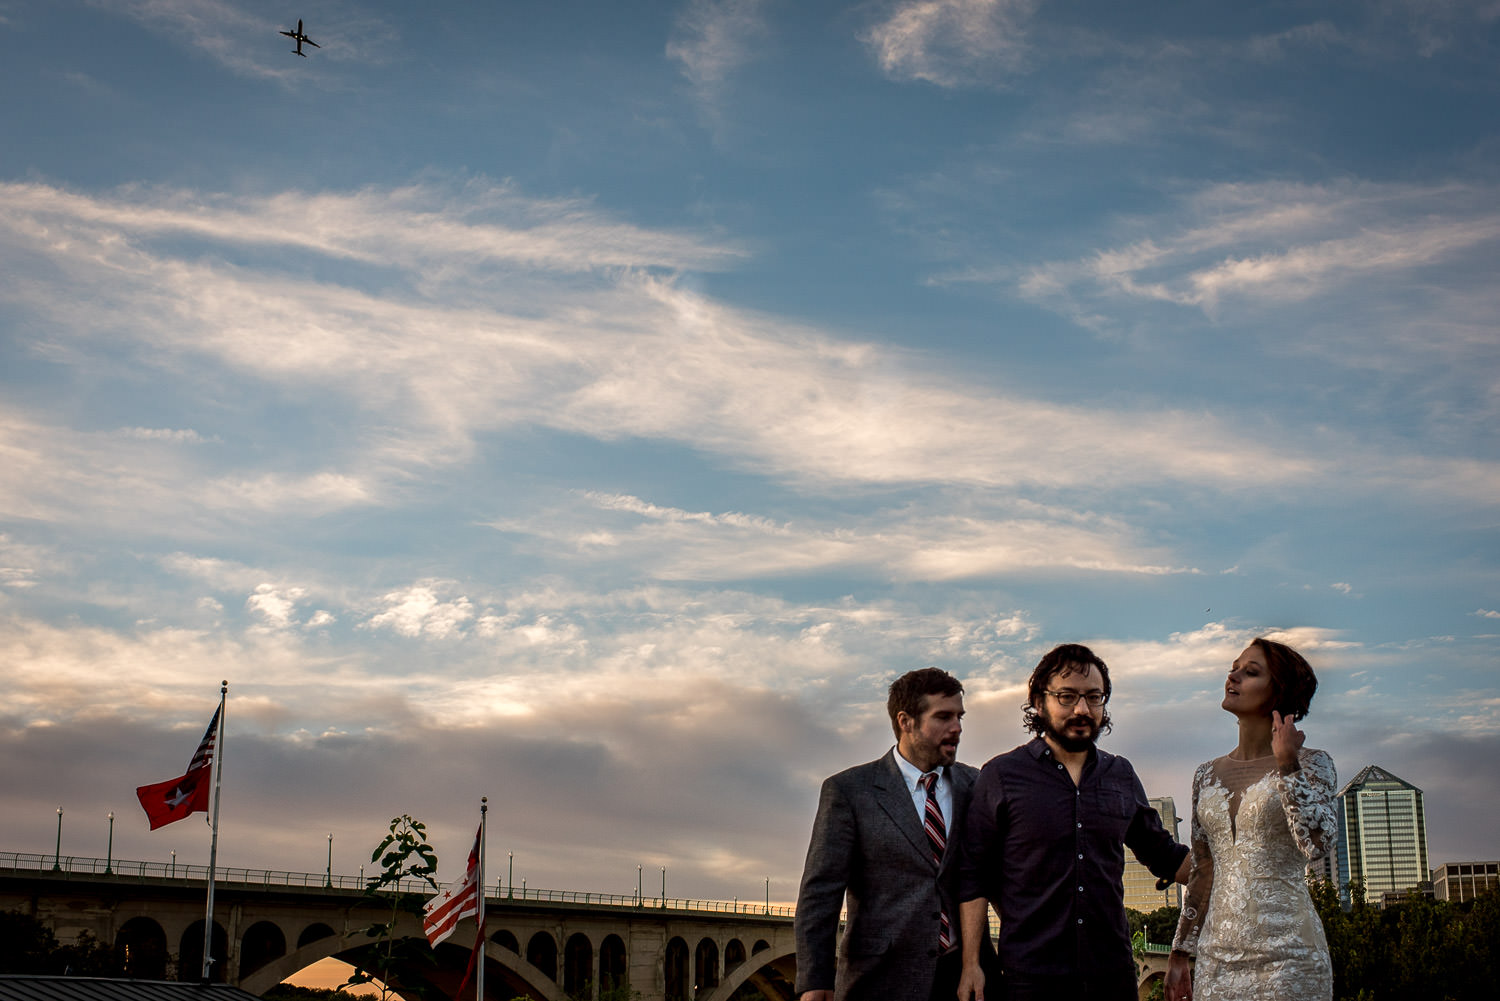 airplane flies over bride and groom